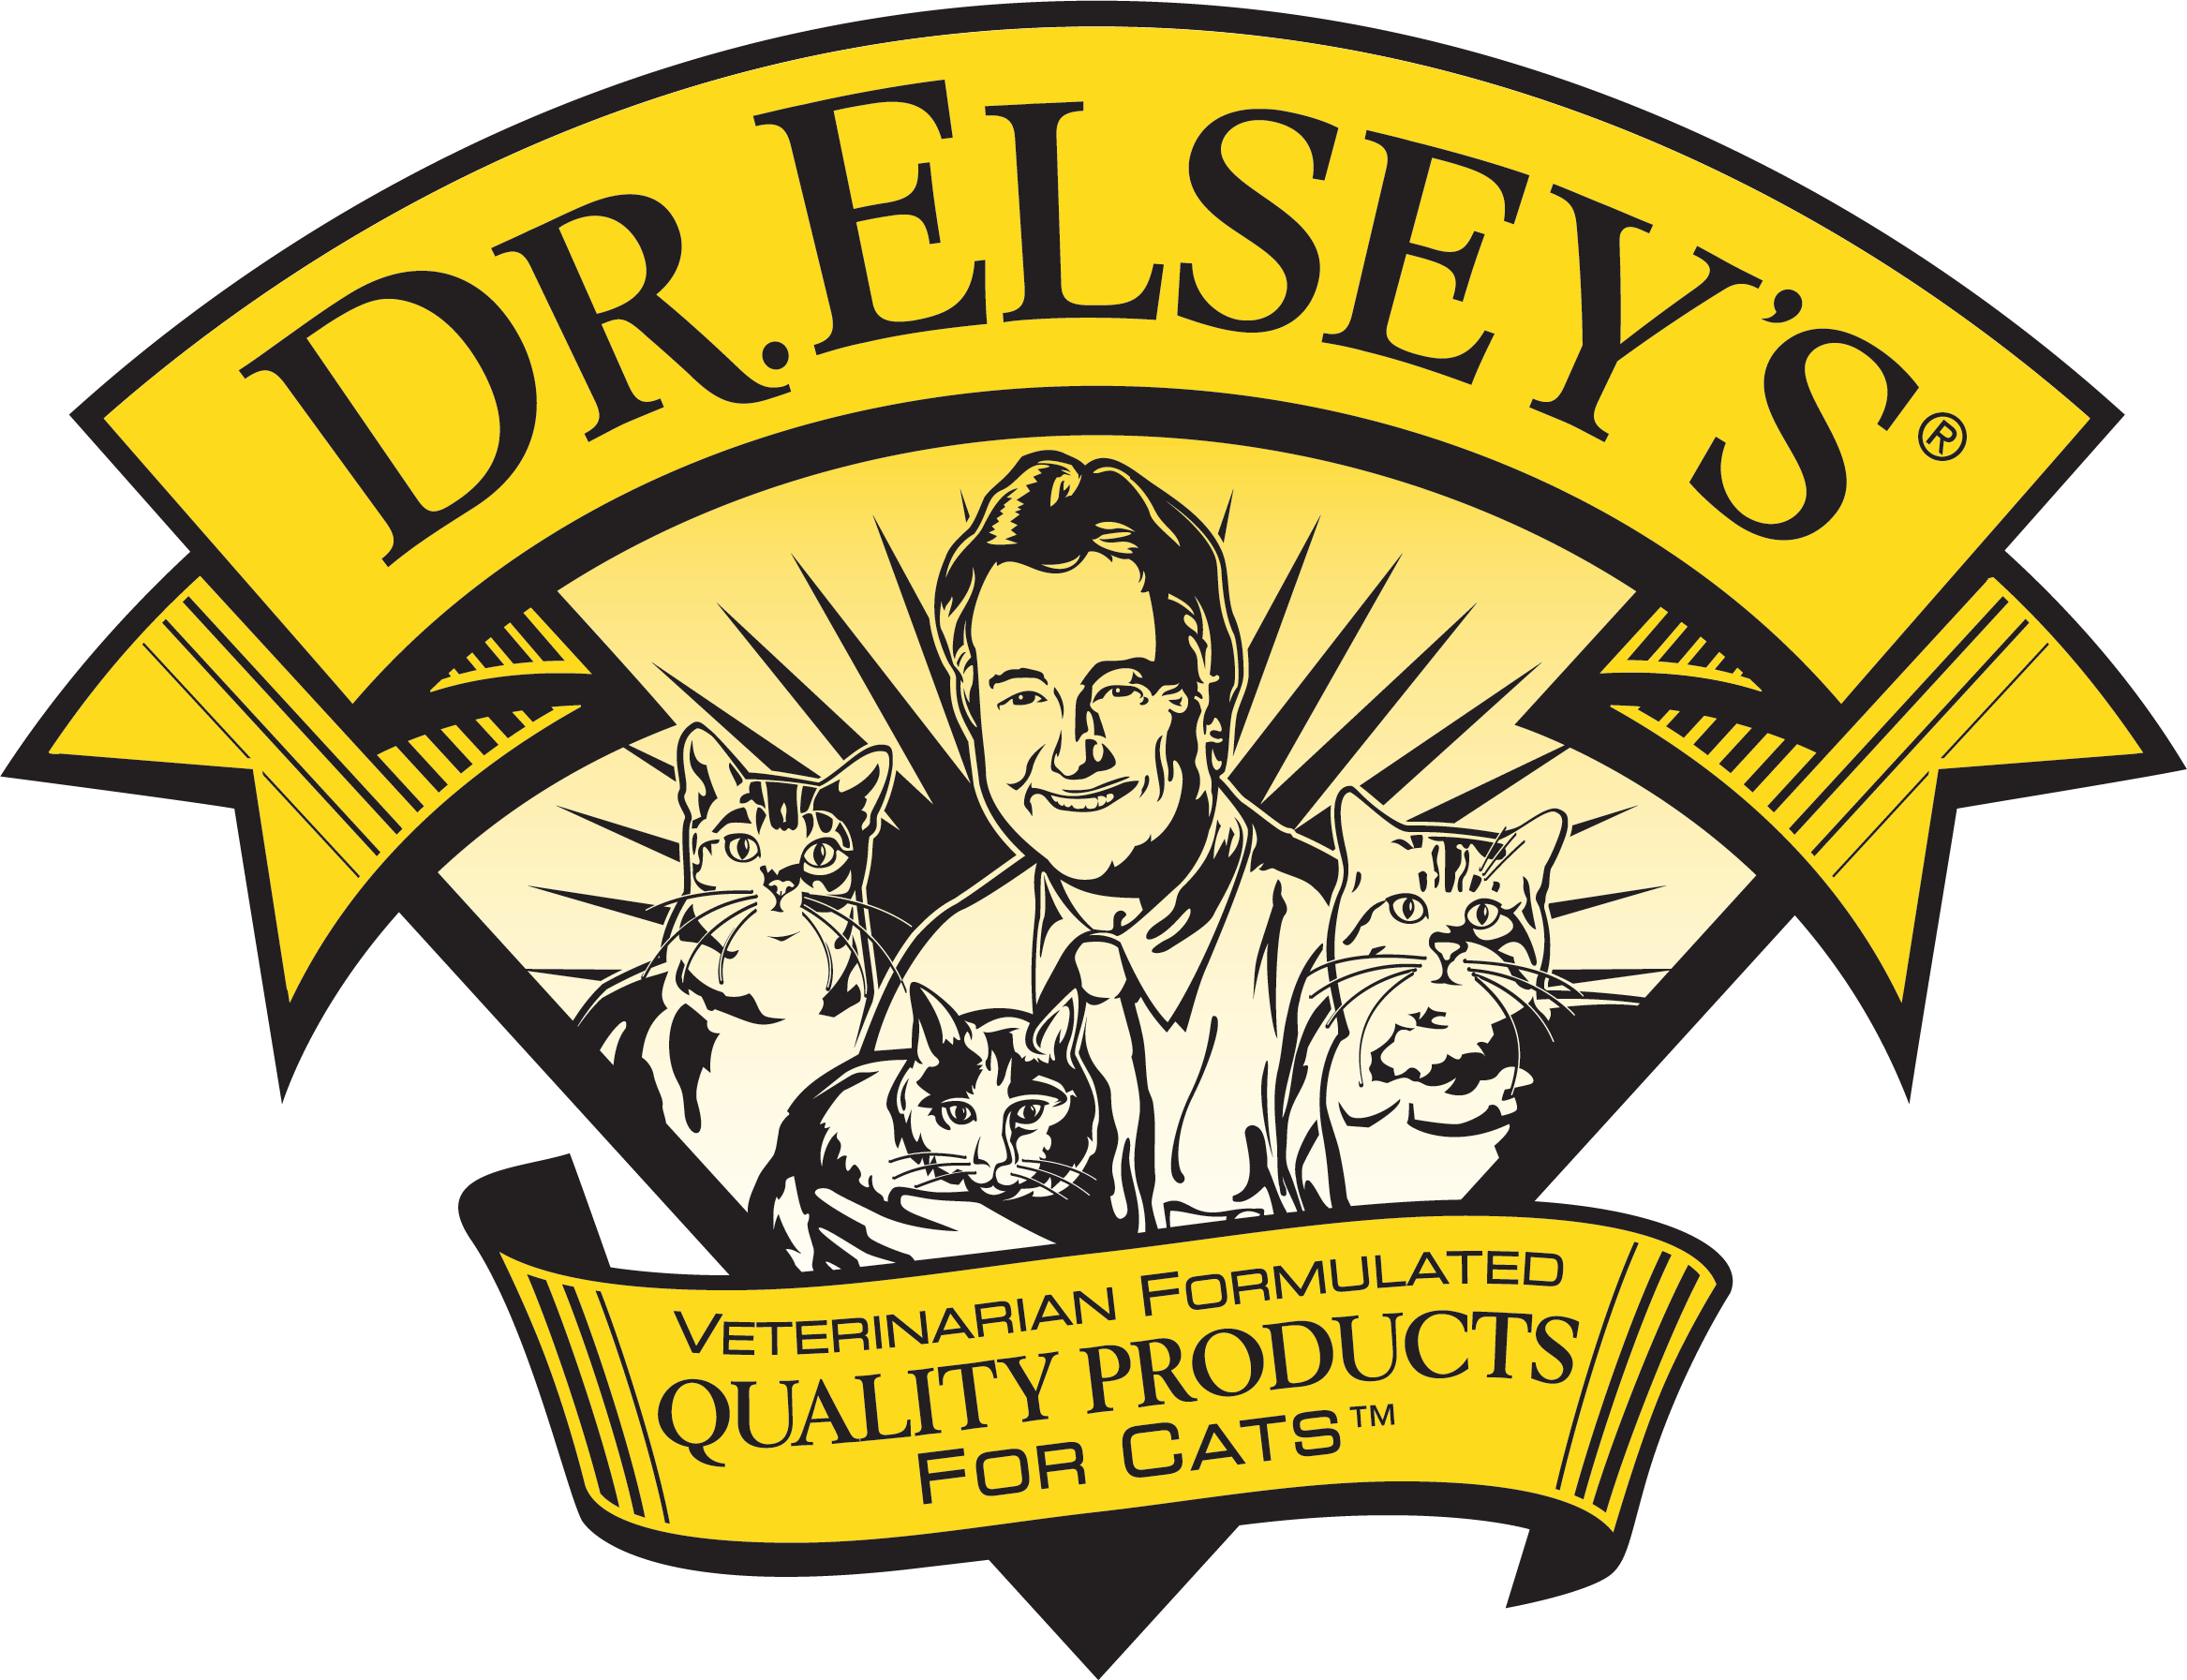 Sponsored by Dr. Elsey's